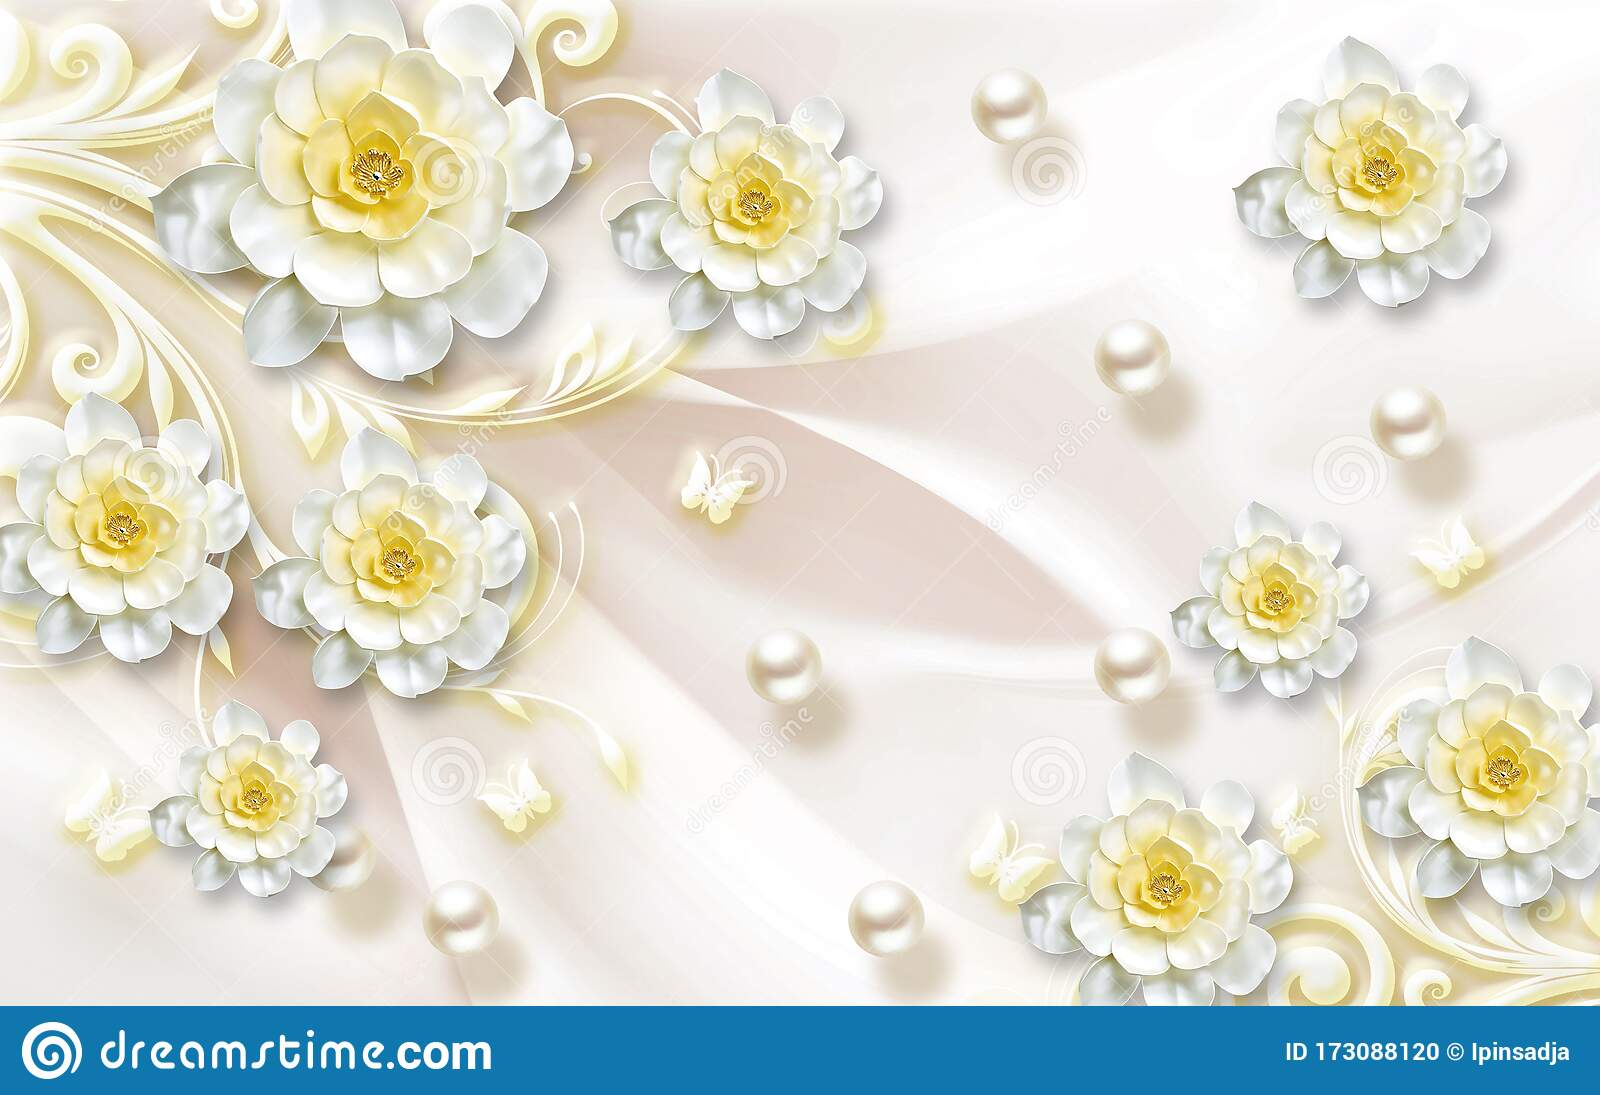 3d Wallpaper Luxury Jawelry Floral Yellow Ornamental Stock Photo